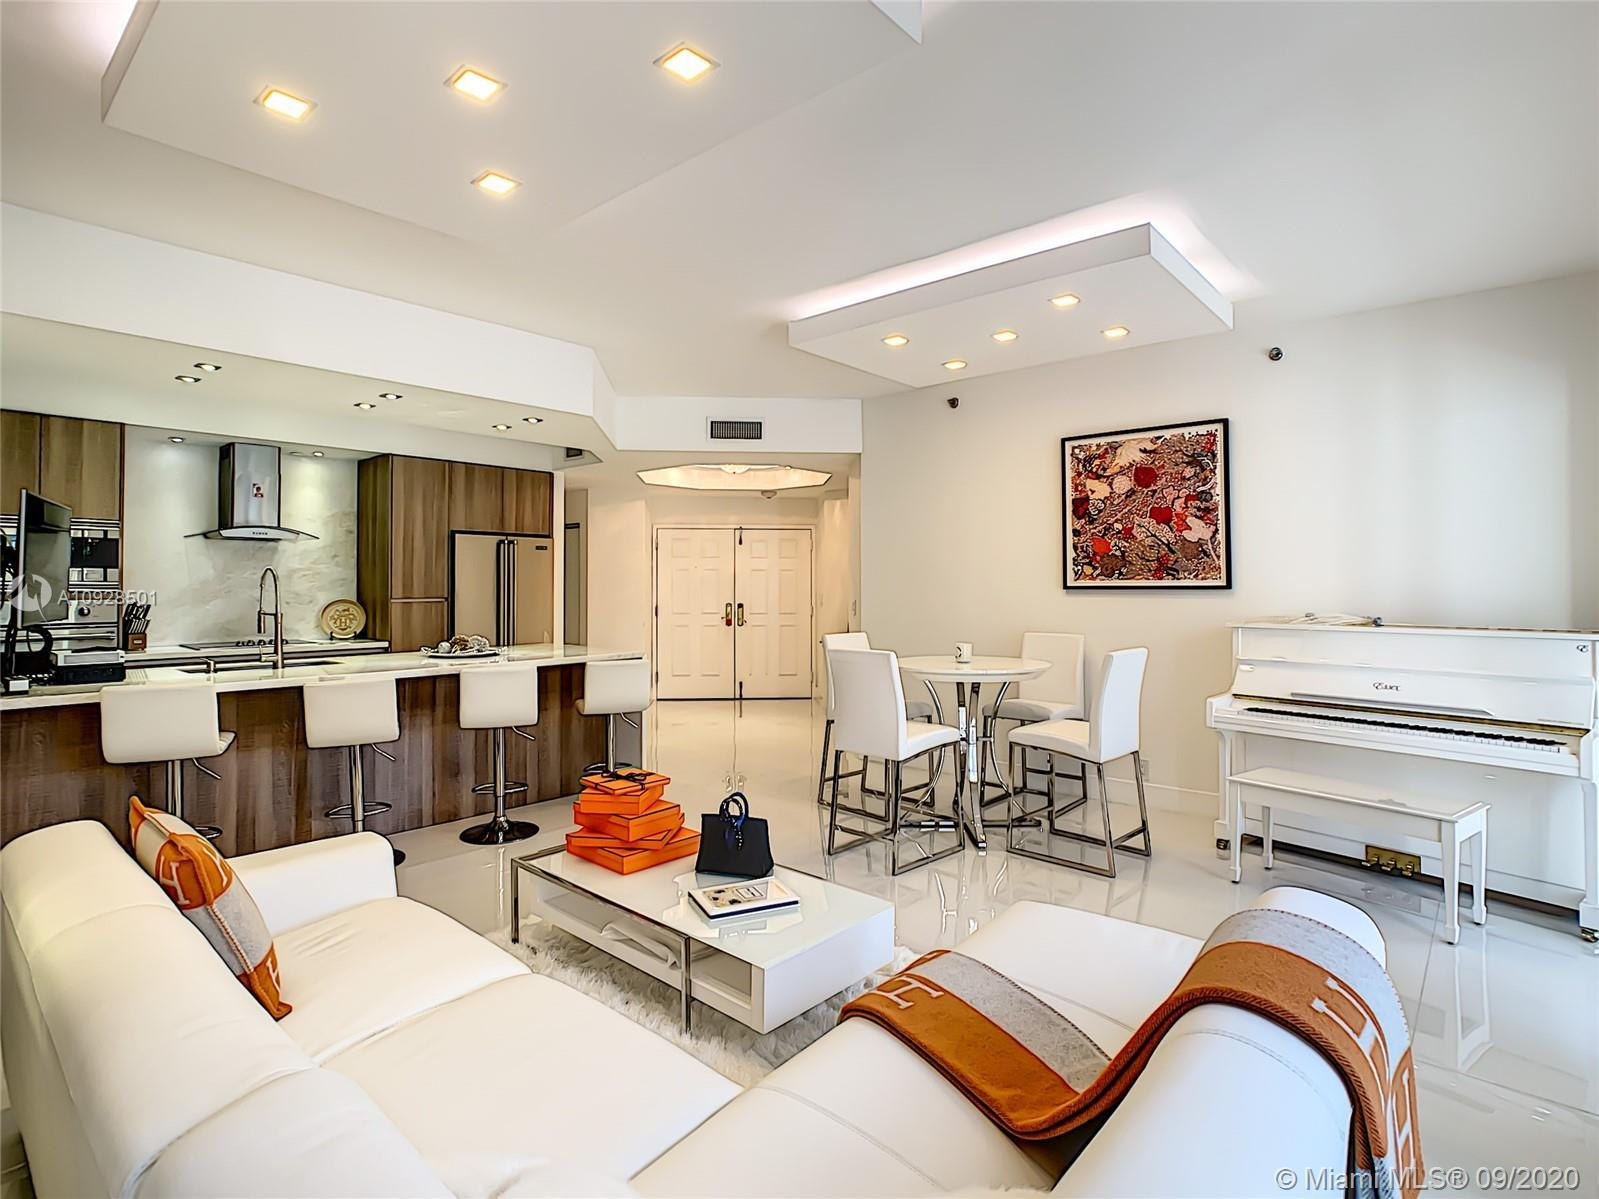 Experience 5-star resort living on the prestigious Williams Island. Stunning, renovated unit with 3